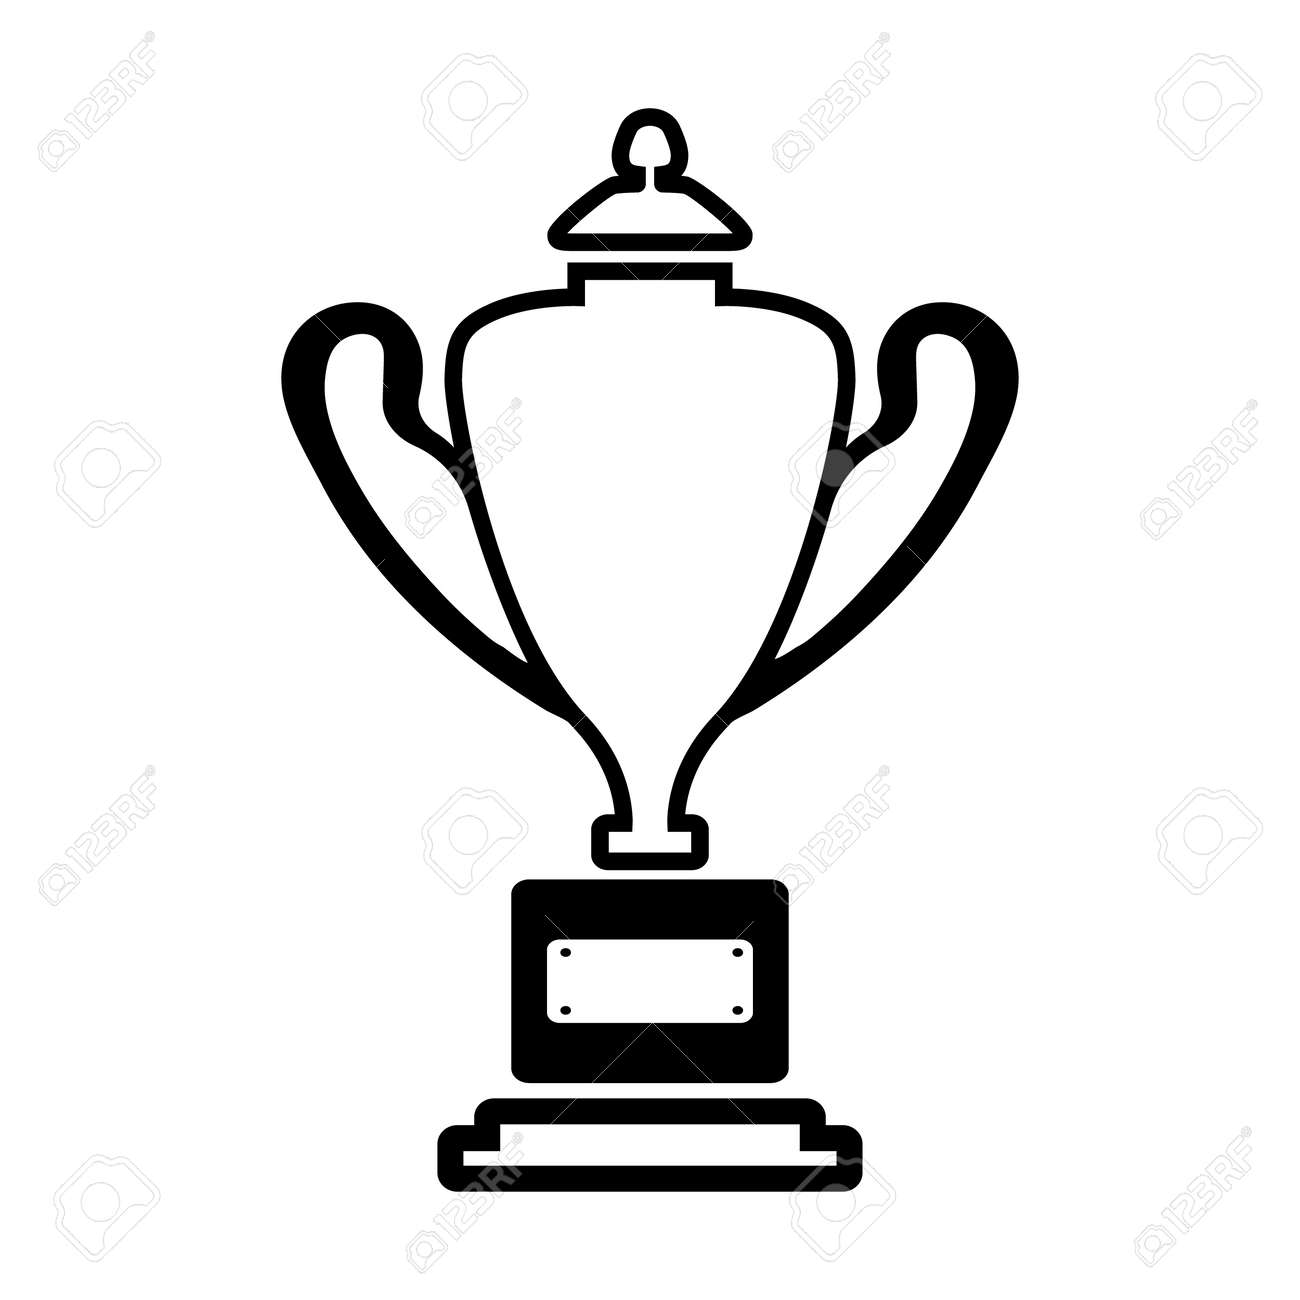 Trophy Line Simple Icon Stock Vector